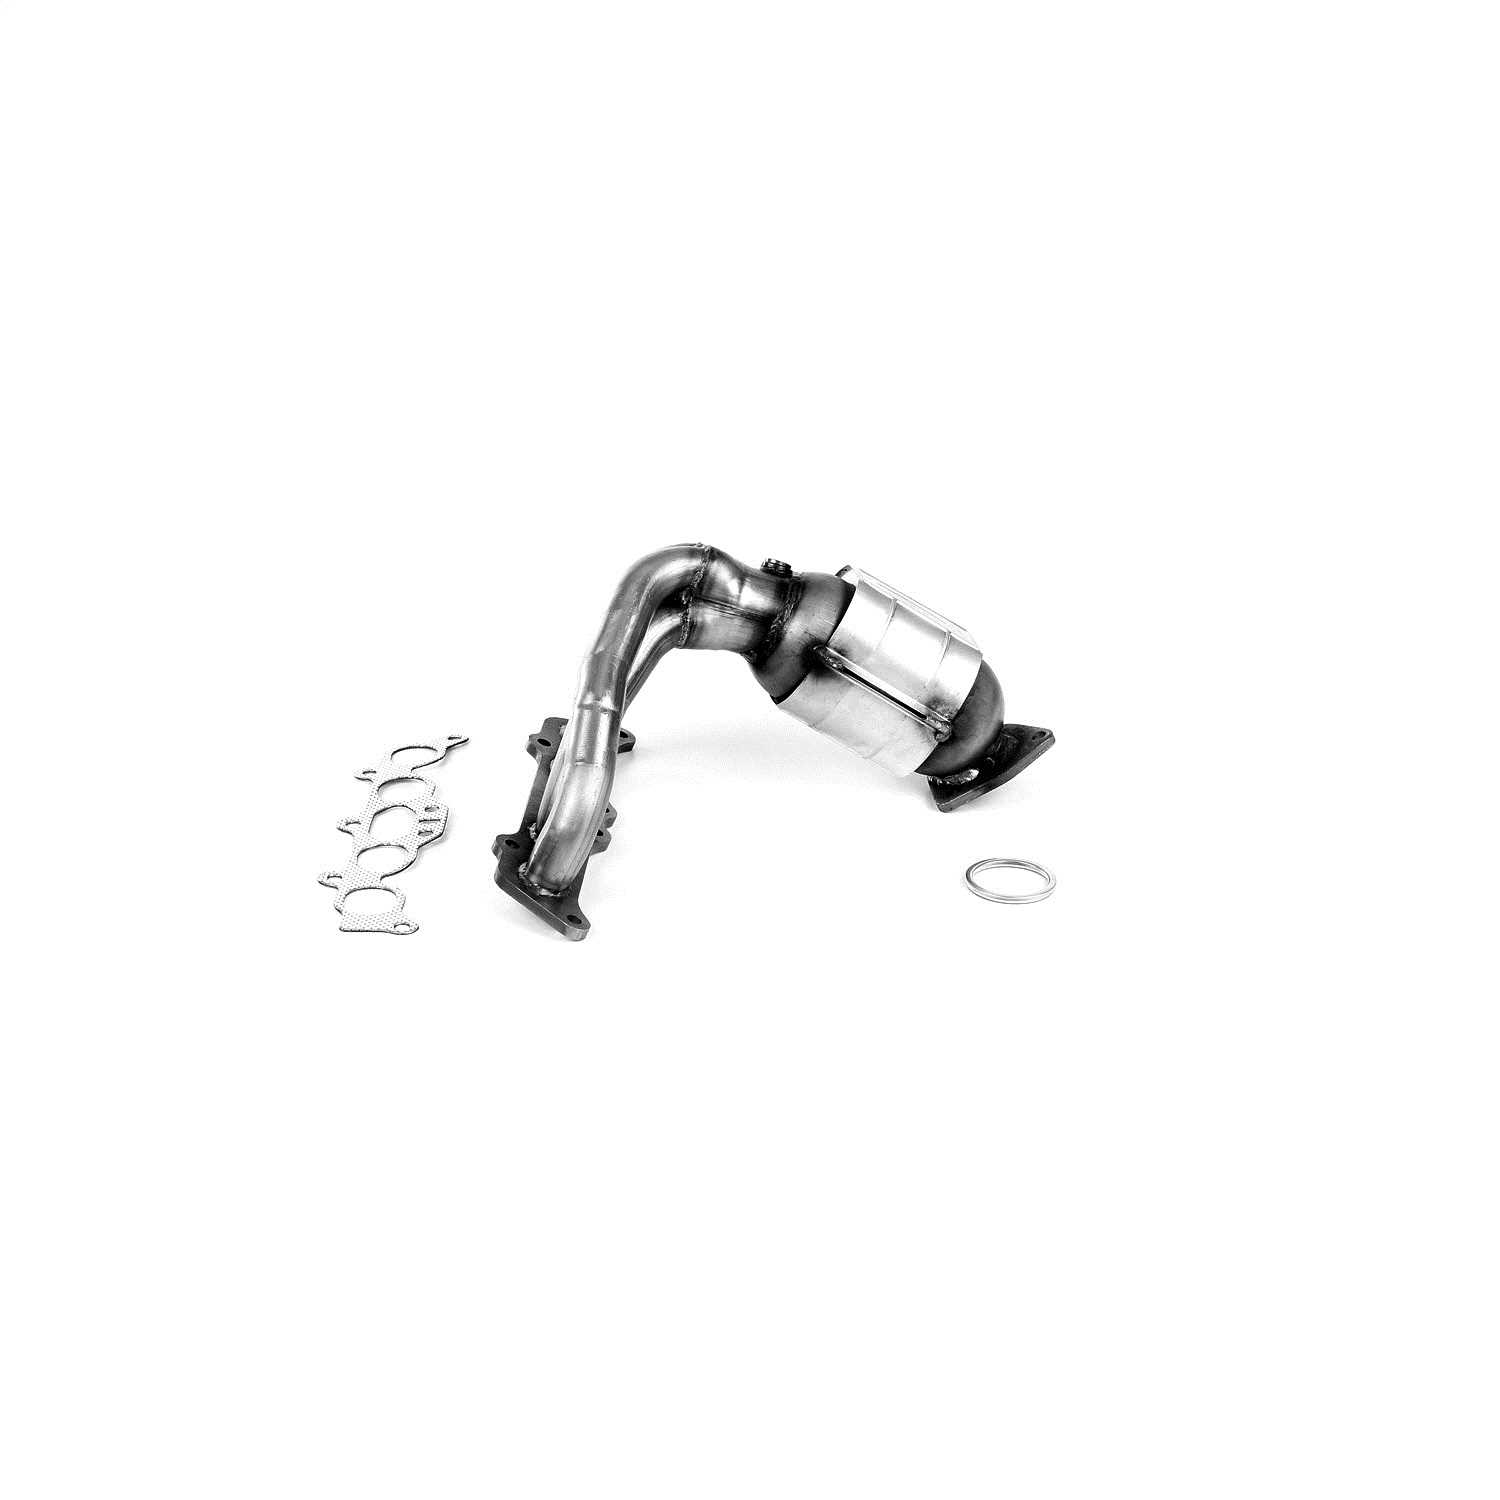 2051061 Flowmaster 49 State Catalytic Converters Direct Fit Catalytic Converter